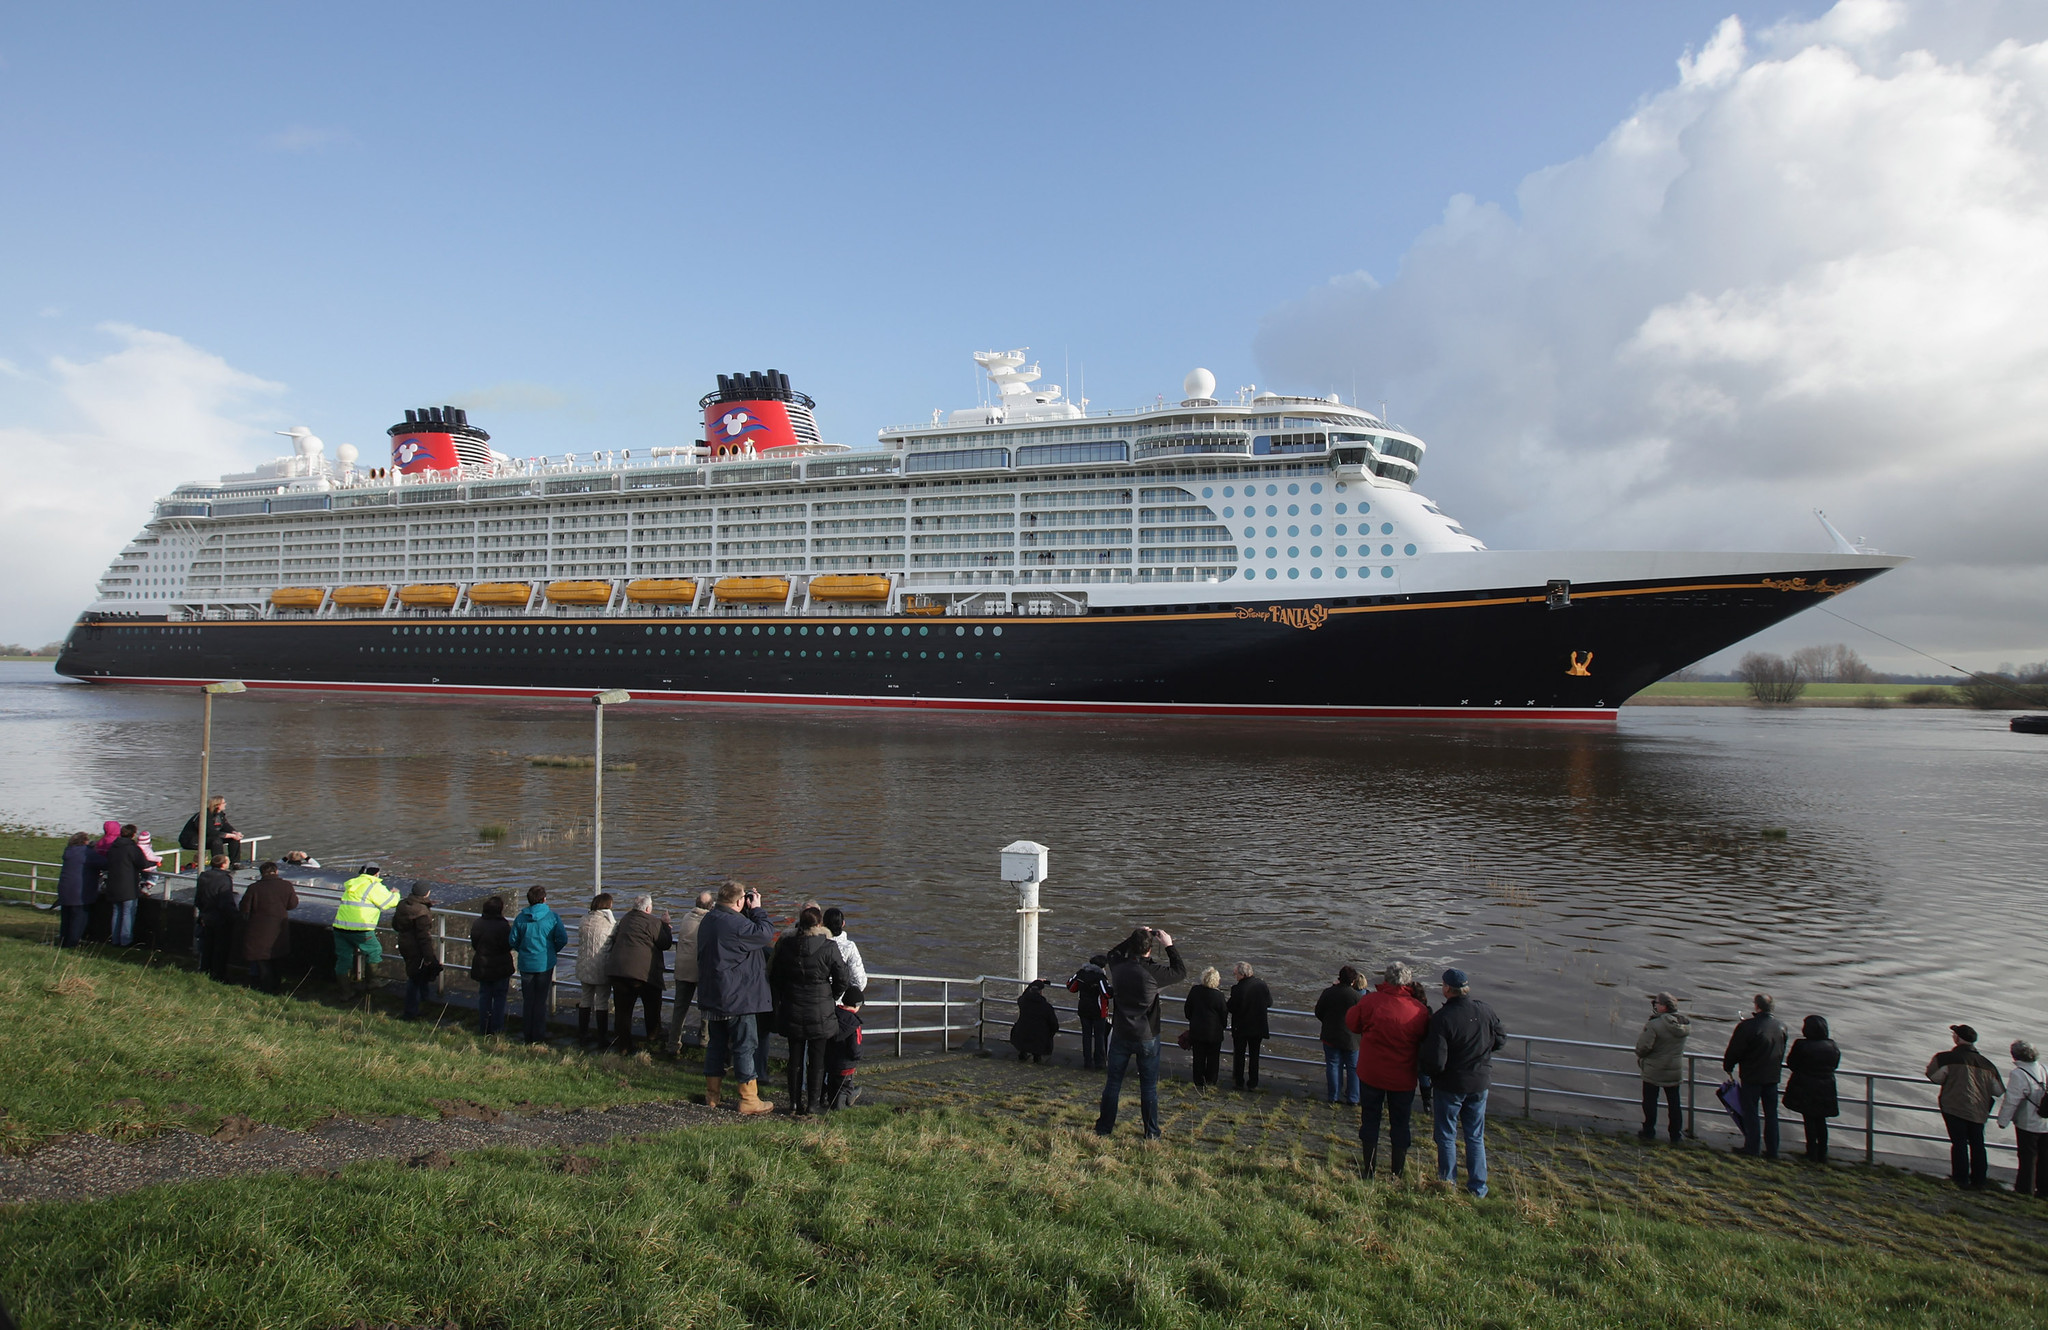 Florida Cruise Guide: Disney Fantasy pictures - Disney Fantasy leaves the shipyard